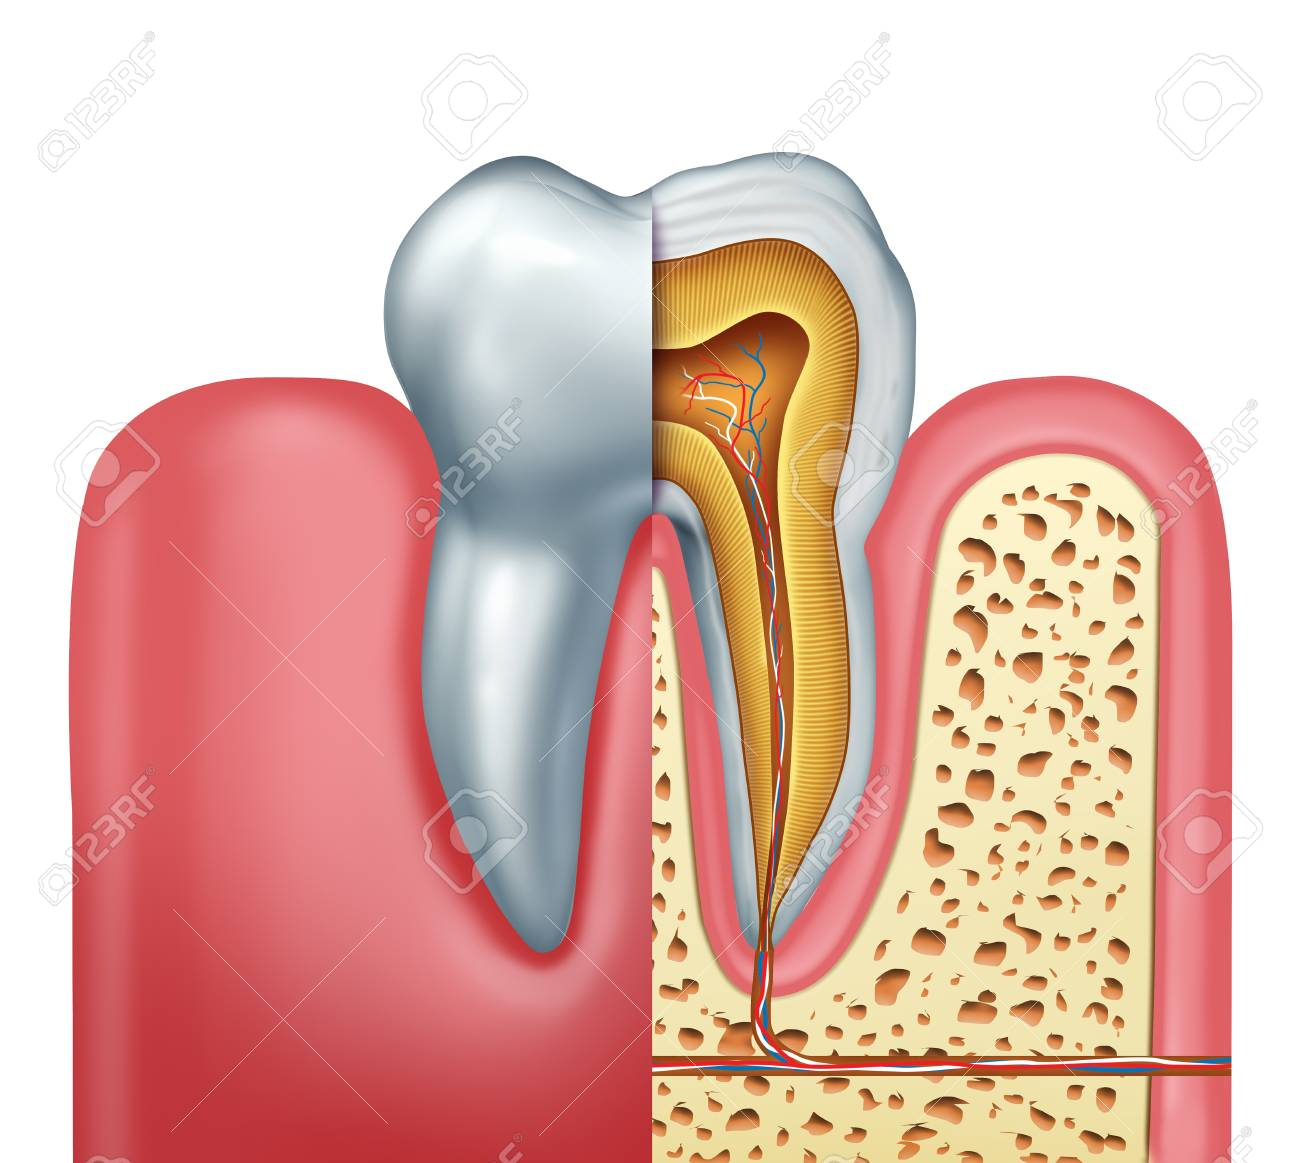 Human Tooth Anatomy Dentistry Medical Concept As A Cross Section